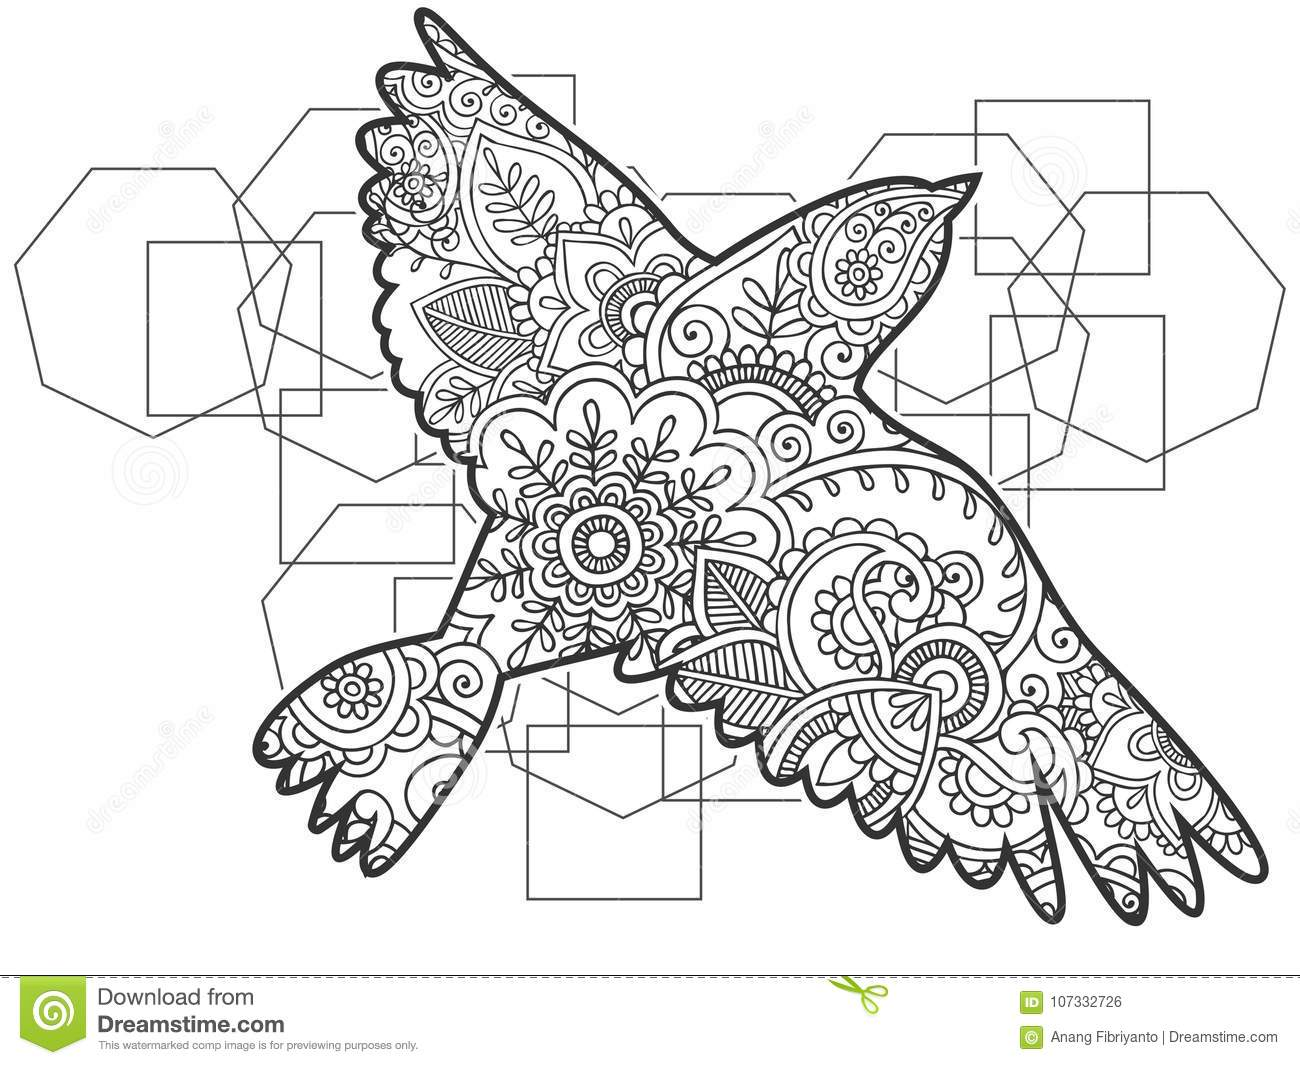 flying bird illustration black white animal hand drawn doodle hand drawn doodle set collection adult anti stress coloring